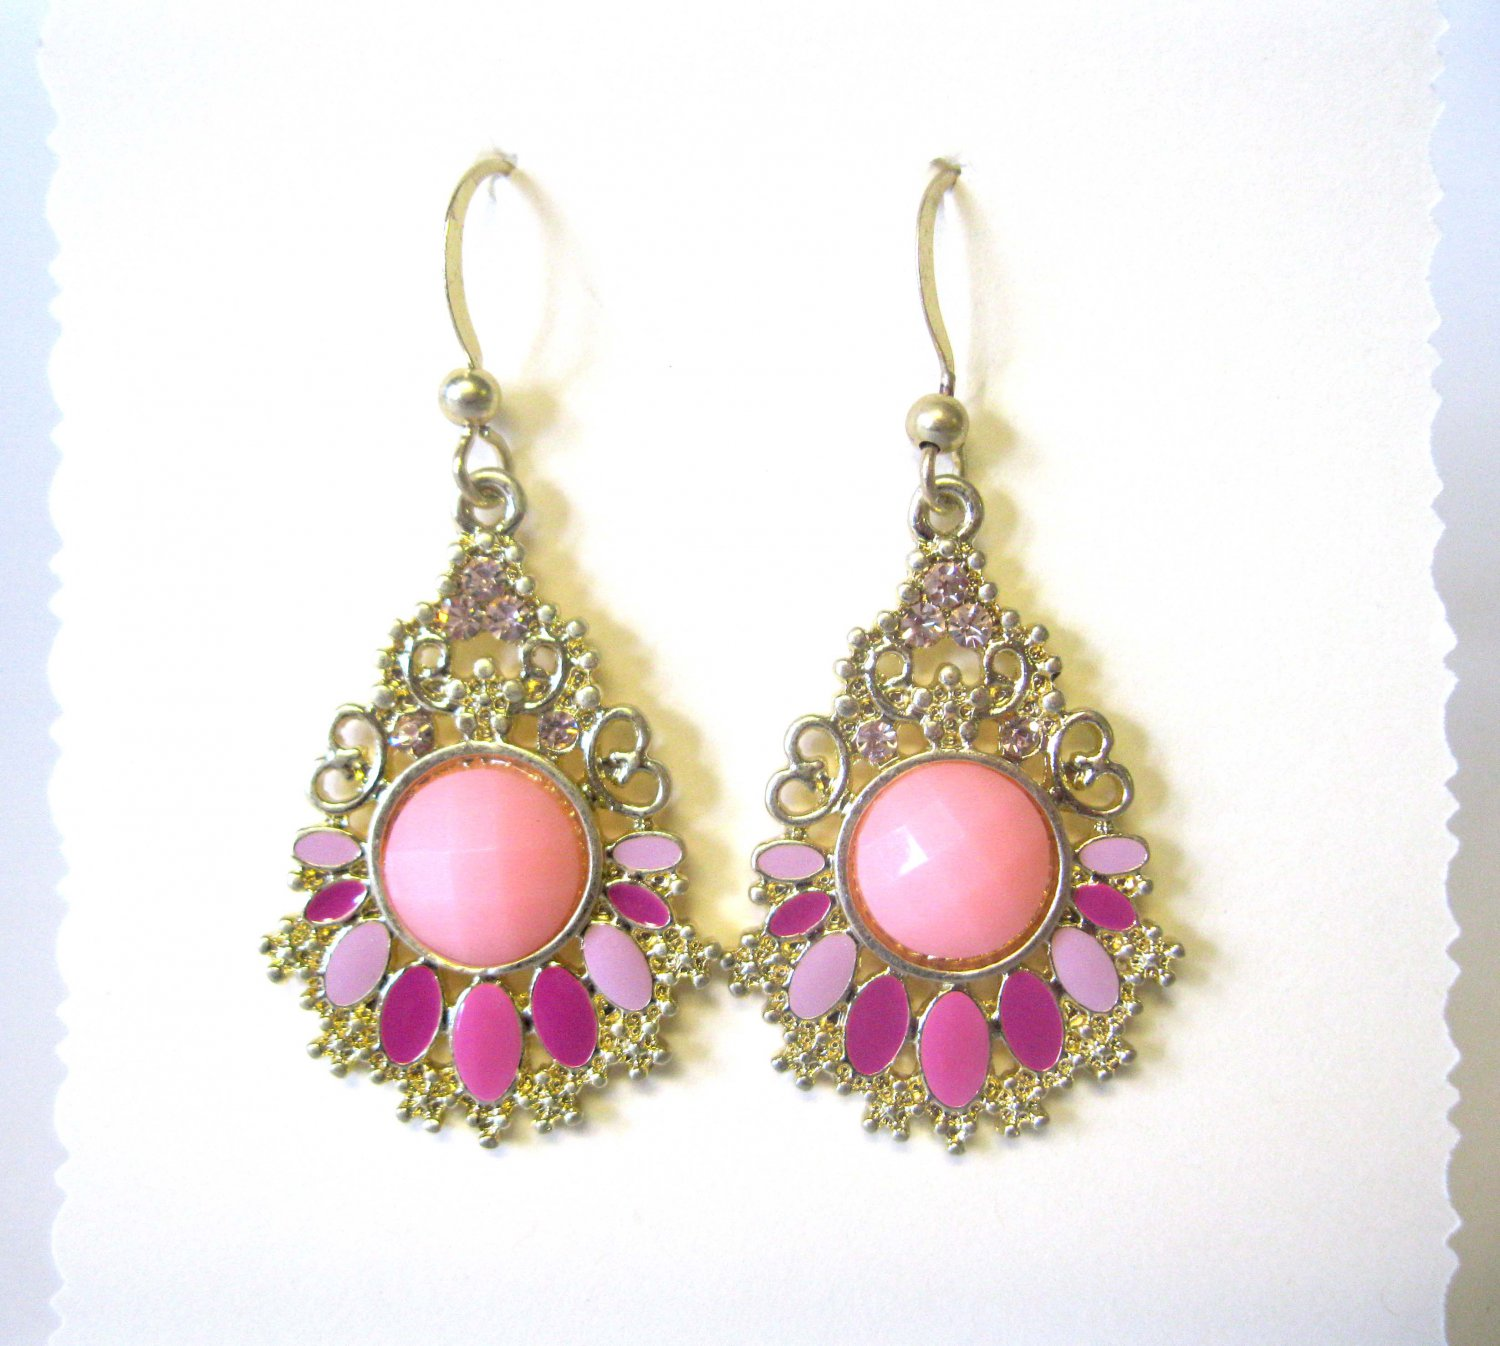 Pink and fuschia with crystals fashion drop earrings